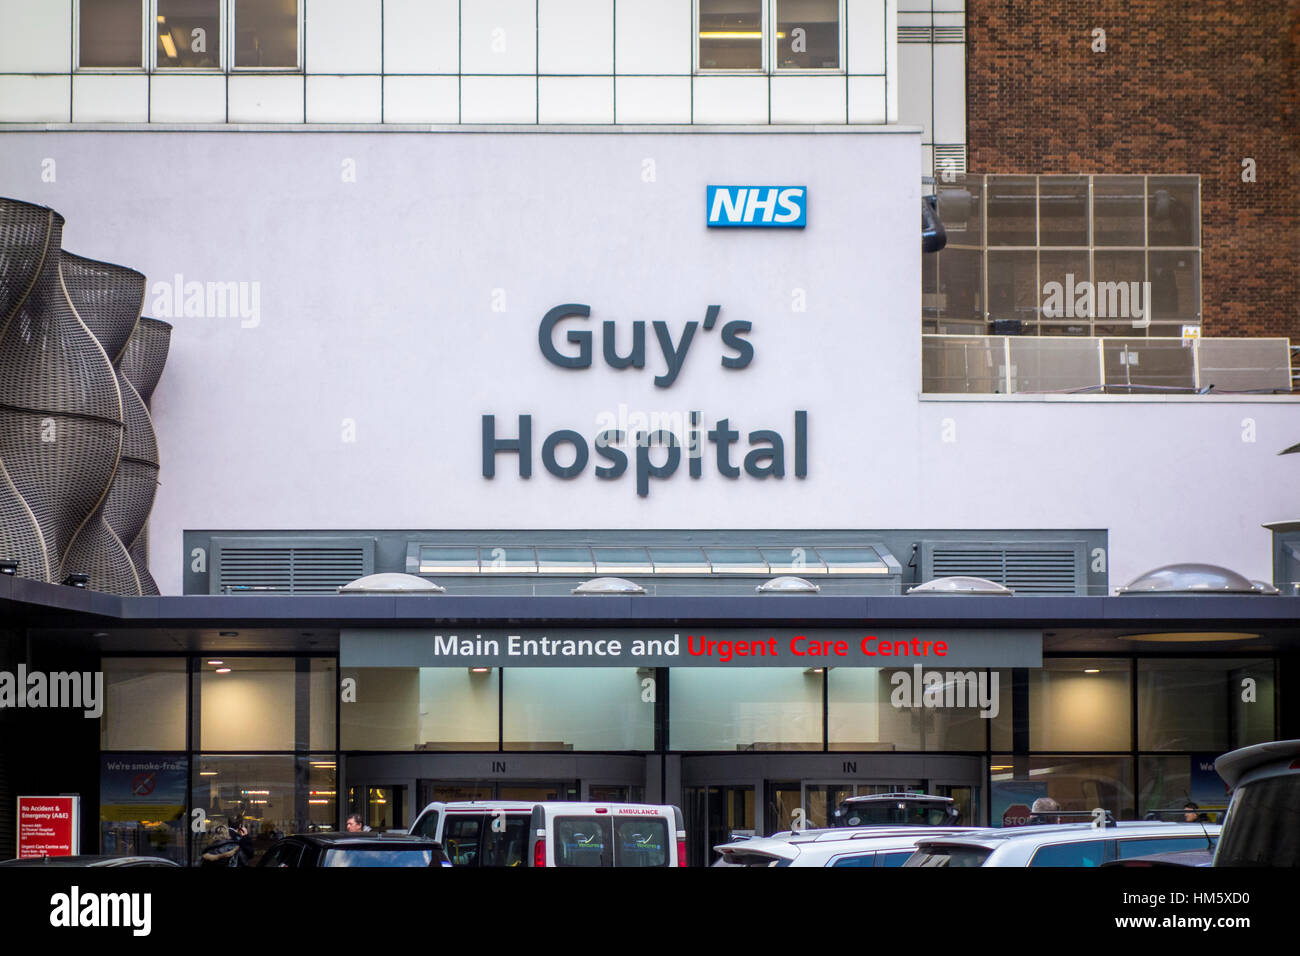 Guy's Hospital NHS, main entrance, London, UK - Stock Image